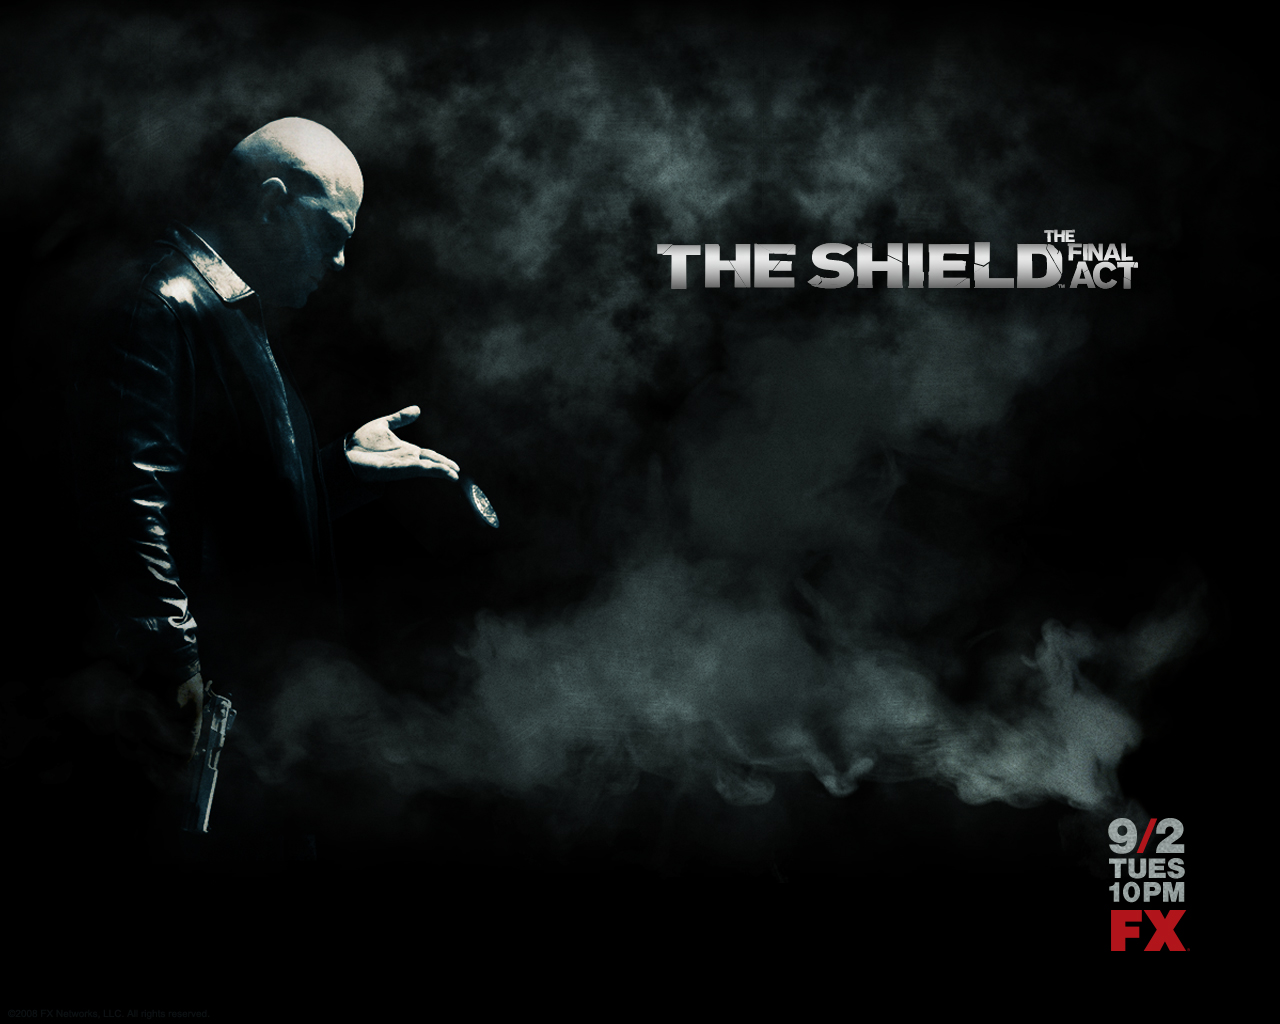 The Shield Desktop Wallpapers for HD Widescreen and Mobile 1280x1024